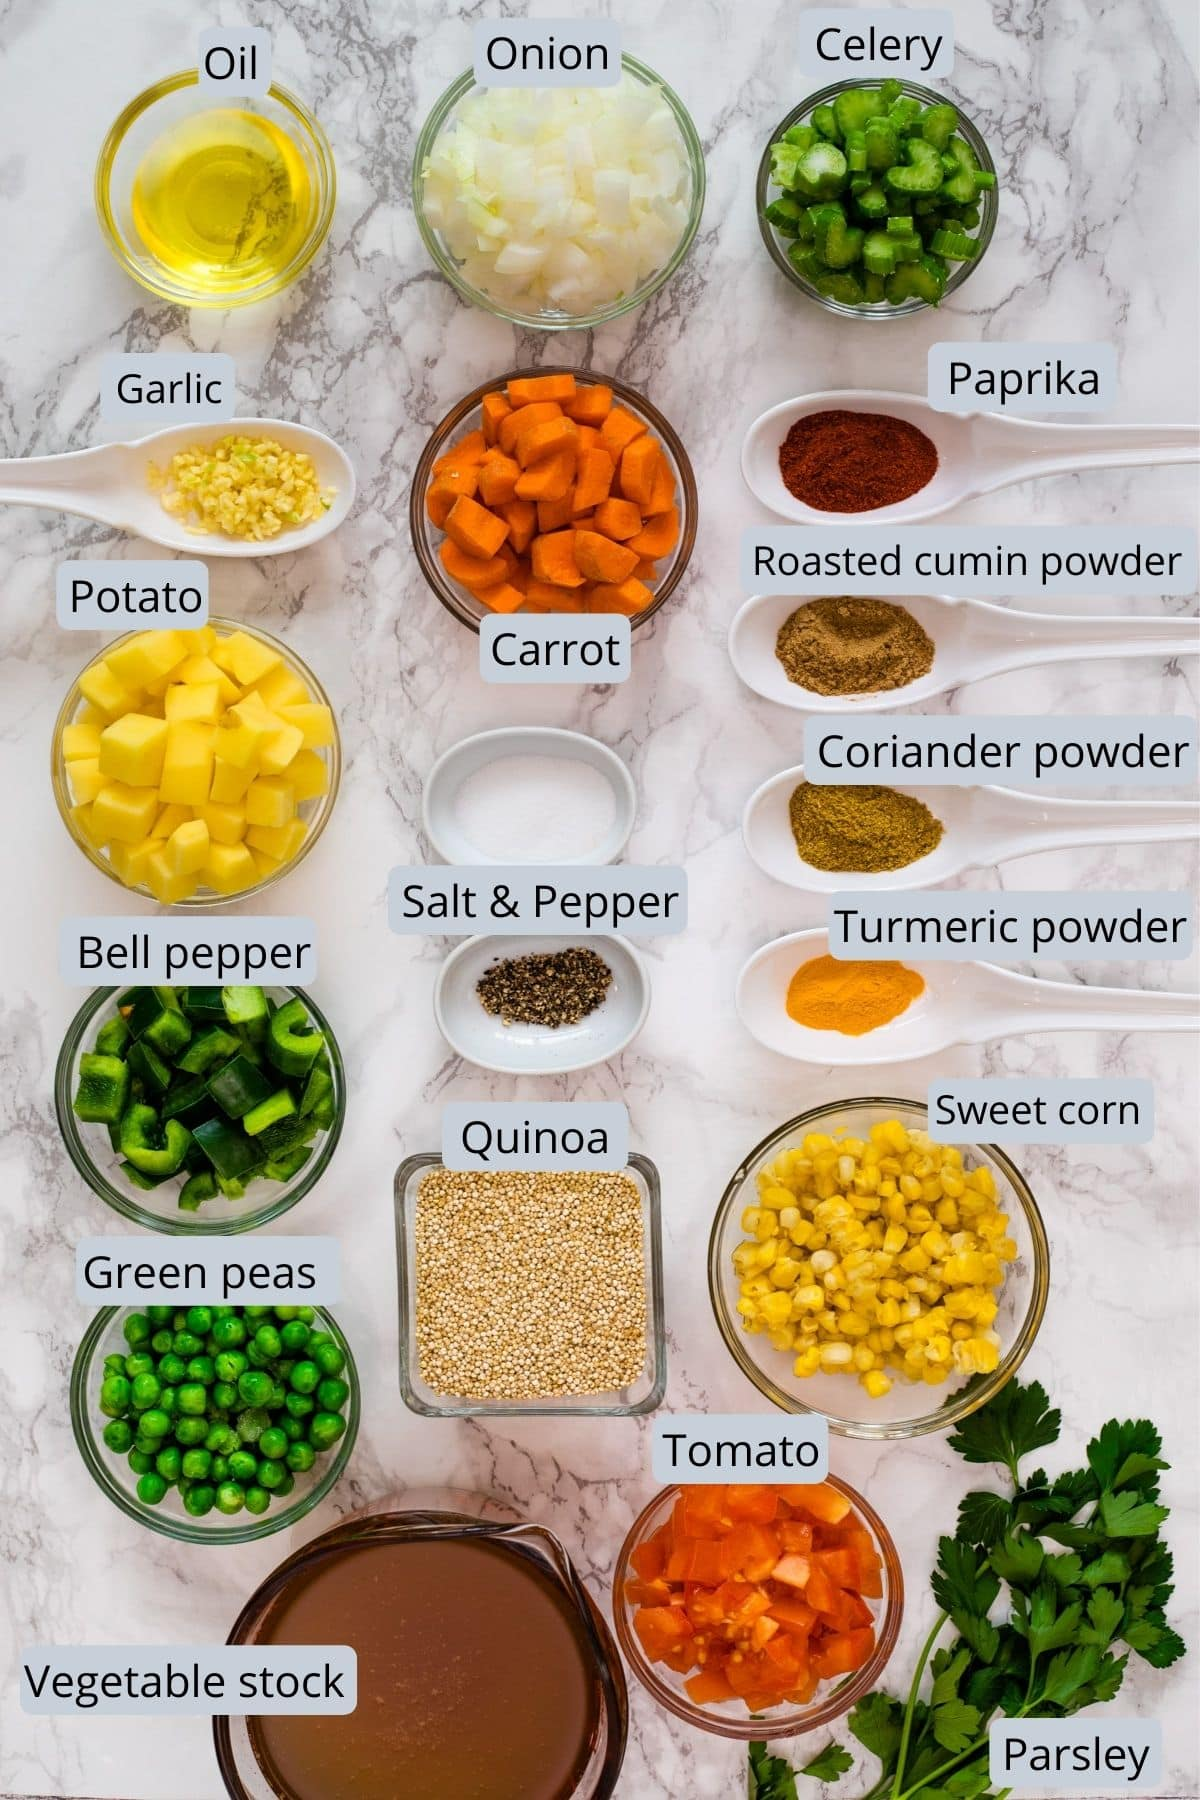 Ingredients used in quinoa vegetable soup includes quinoa, different vegetables, oil, salt, pepper, spices, stock and parsley.